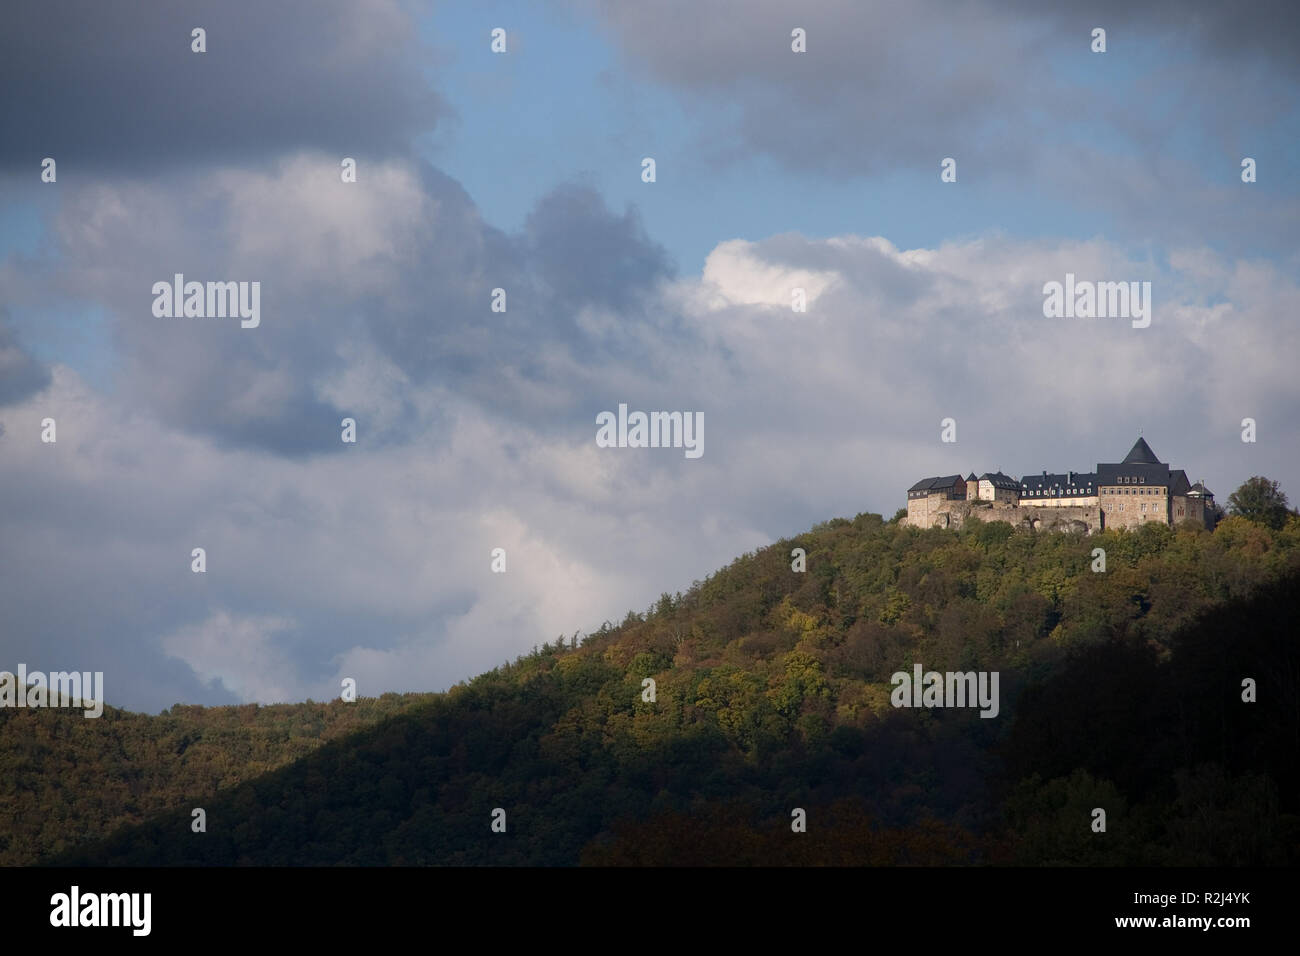 Palais Waldeck at the lake called Edersee - Stock Image